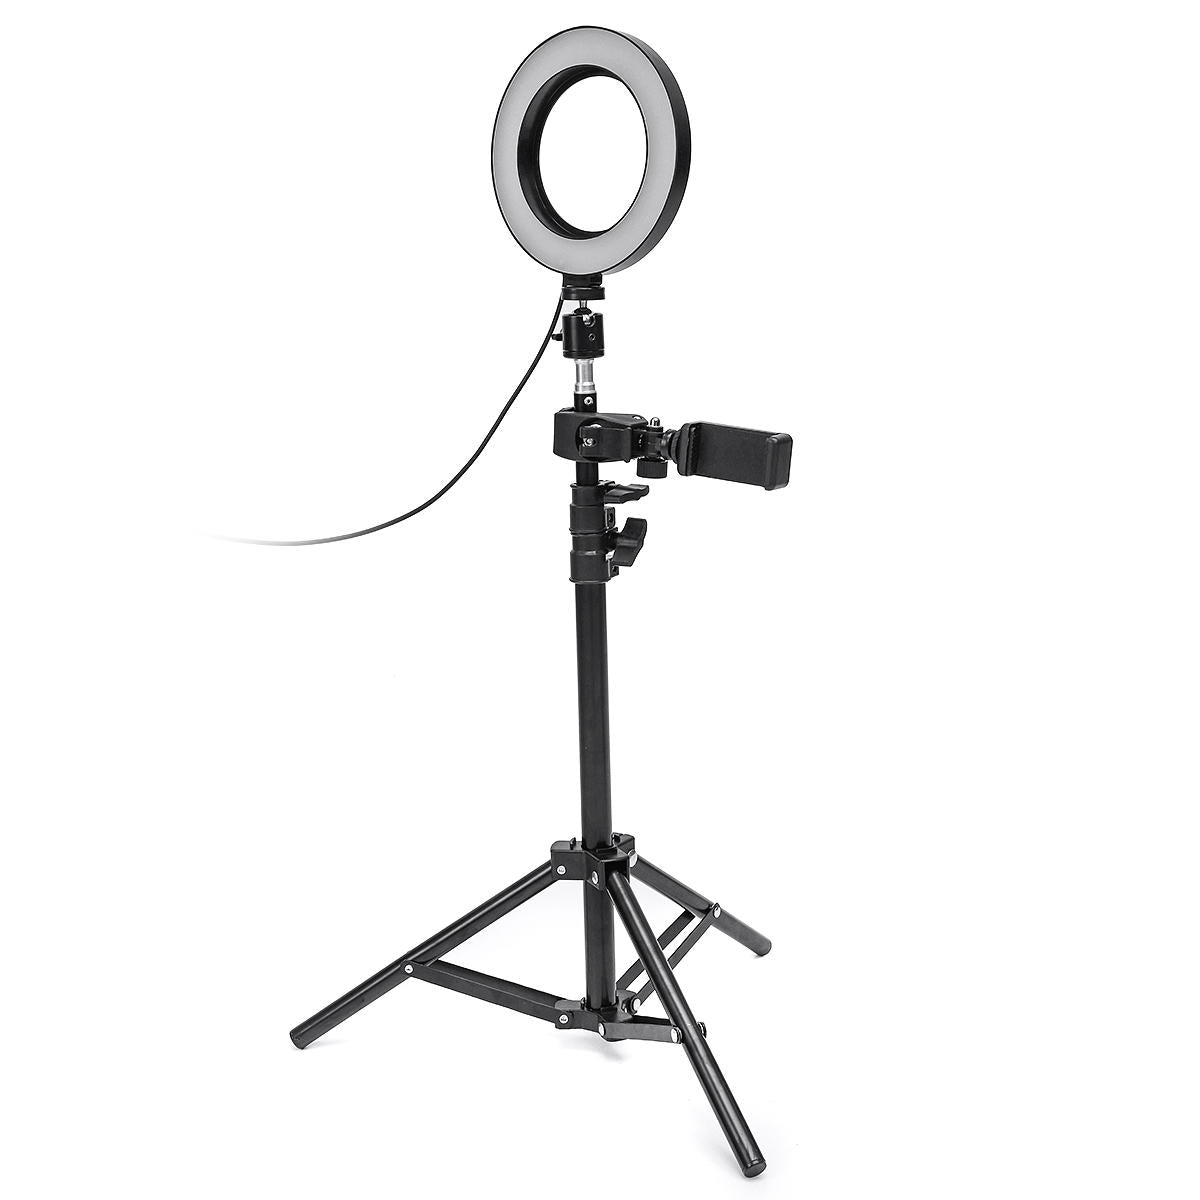 LichtStativ™ Selfie Ring Light with Tripod Stand